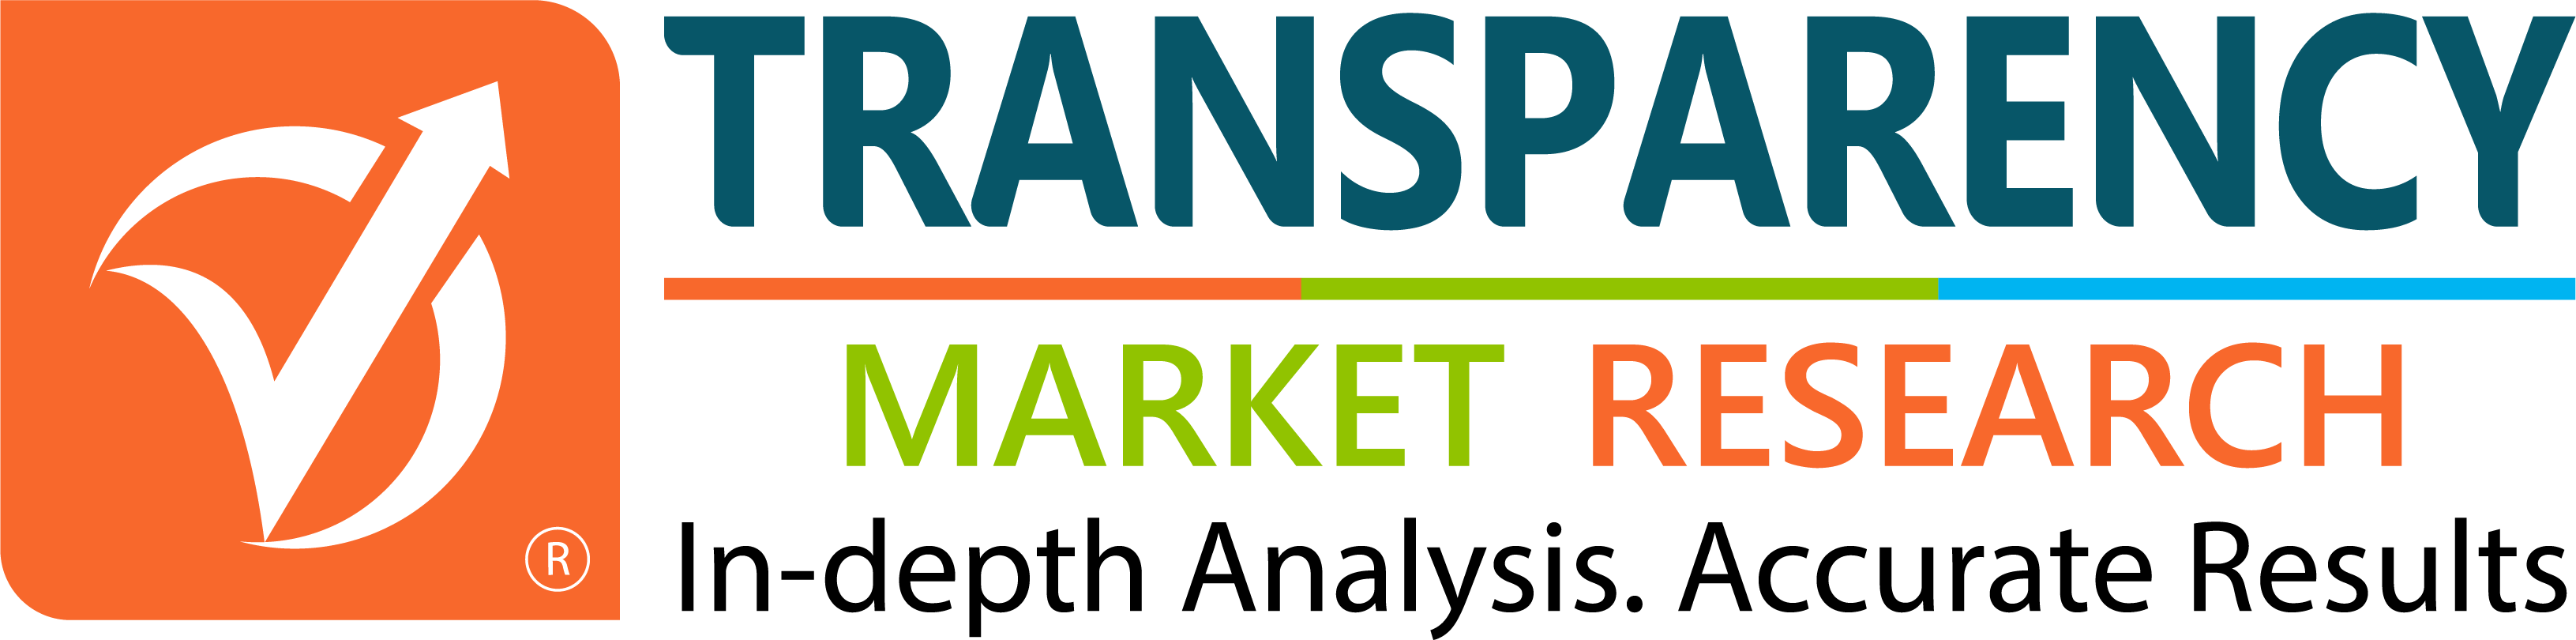 Synthetic Biology Market Size is Generating Revenue of US$ 39.7 Billion by 2027 | Transparency Market Research